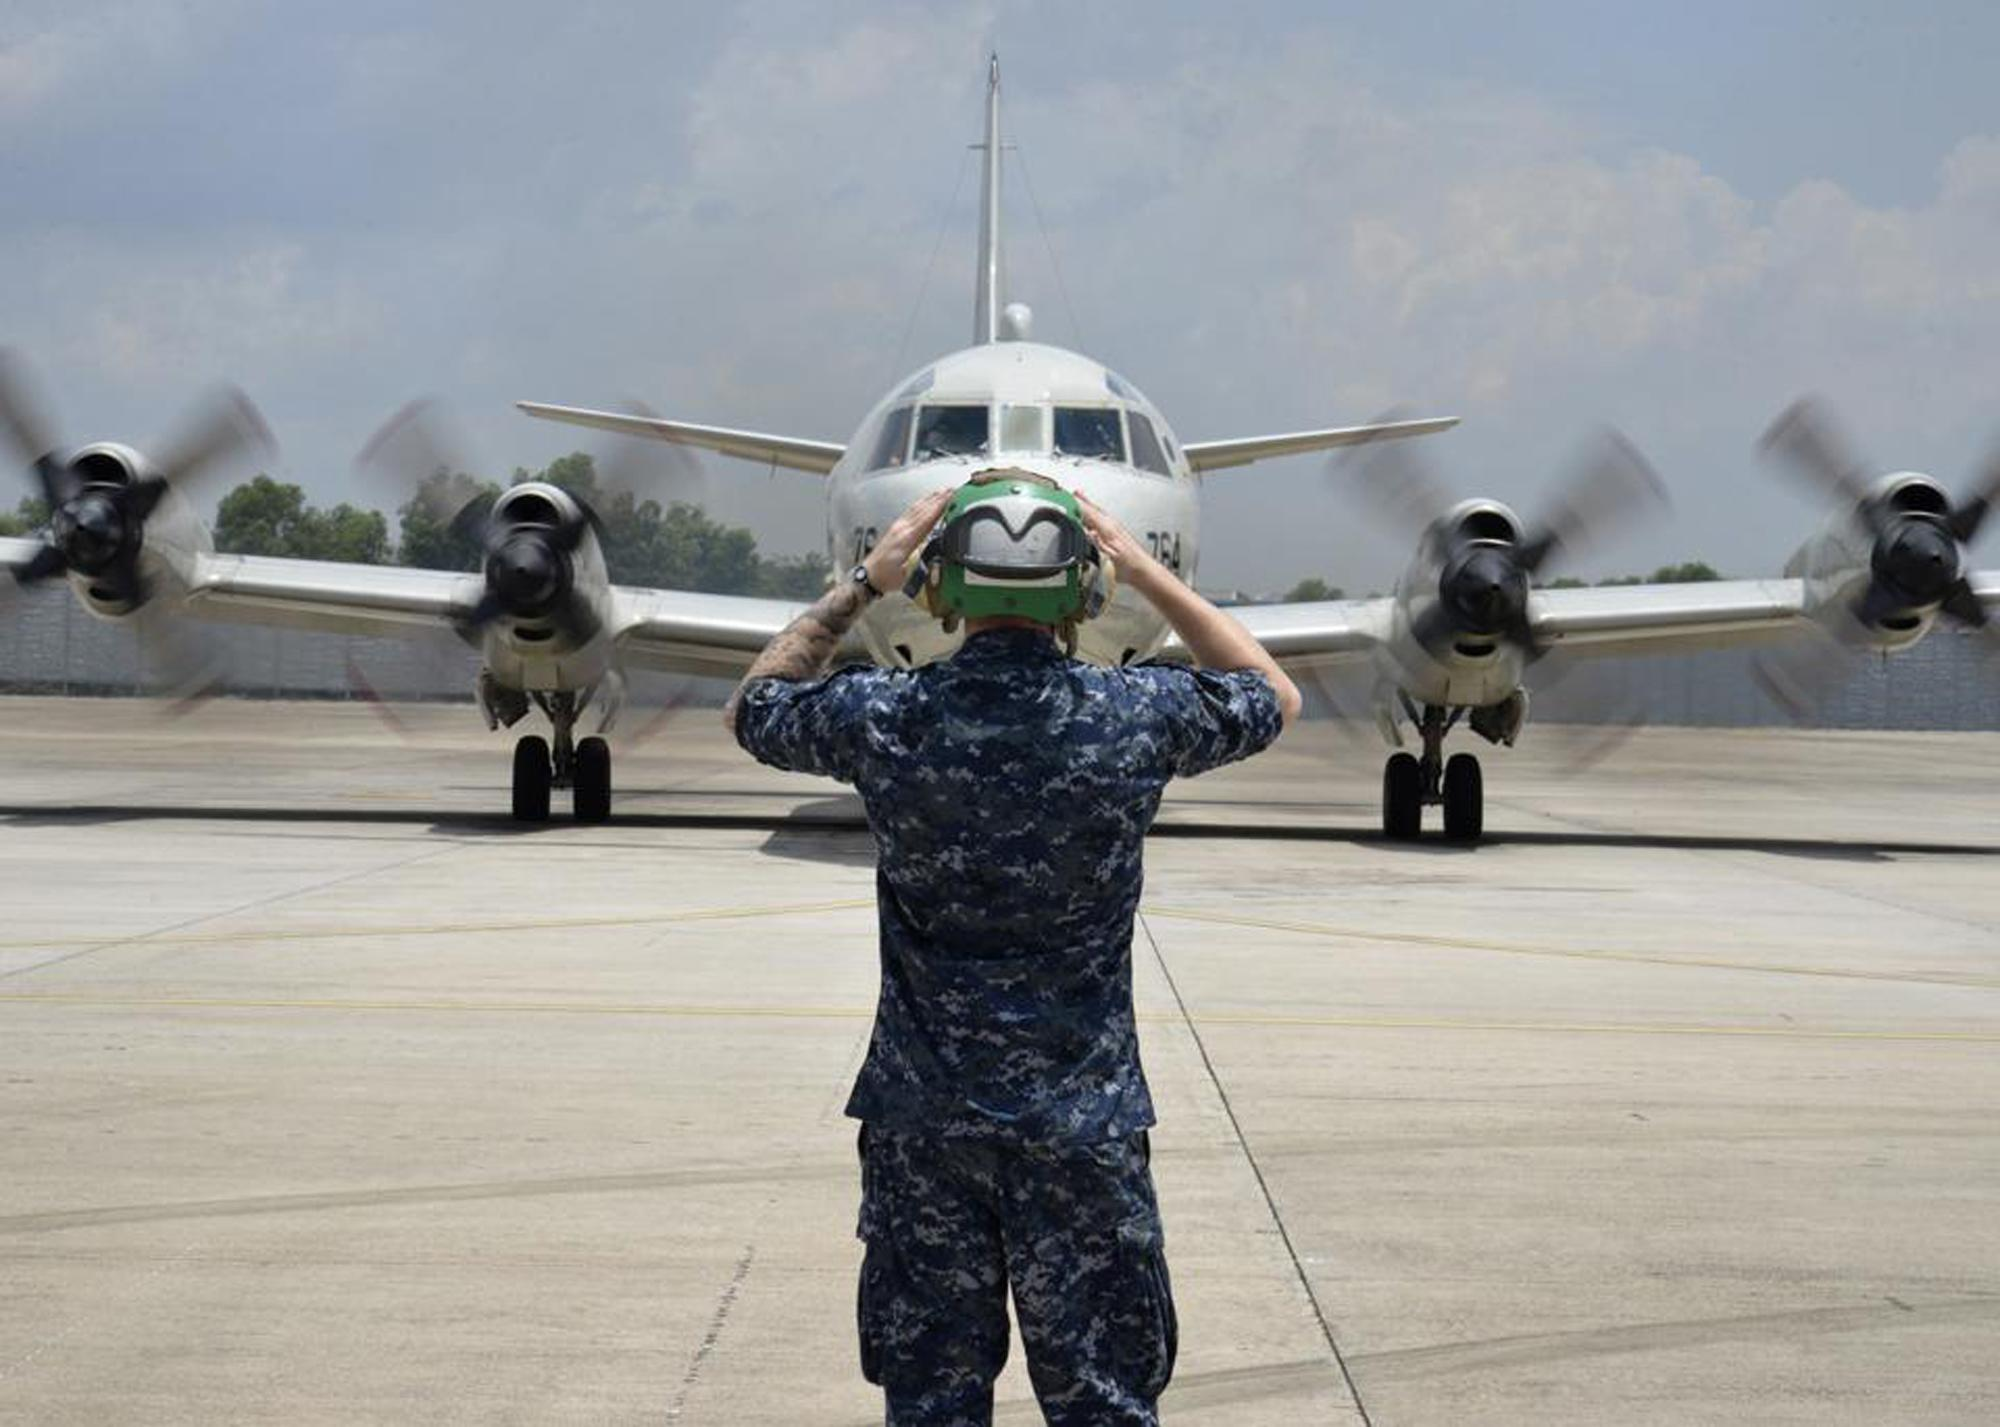 In this Monday, March 17, 2014 photo released by U.S. Navy, a sailor assigned to Patrol Squadron (VP) 46 prepares to launch a P-3C Orion before its mission to assist in search and rescue operations for Malaysia Airlines Flight 370 in Kuala Lumpur, Malaysia. New radar data from Thailand gave Malaysian investigators more potential clues Wednesday, March 19 for how to retrace the course of the missing Malaysian airliner, while a massive multinational search unfolded in an area the size of Australia. Cmdr. William Marks, a spokesman for the U.S. Navy's 7th Fleet, said finding the plane was like trying to locate a few people somewhere between New York and California. (AP Photo/U.S. Navy, Mass Communication Specialist 2nd Class Eric A. Pastor)